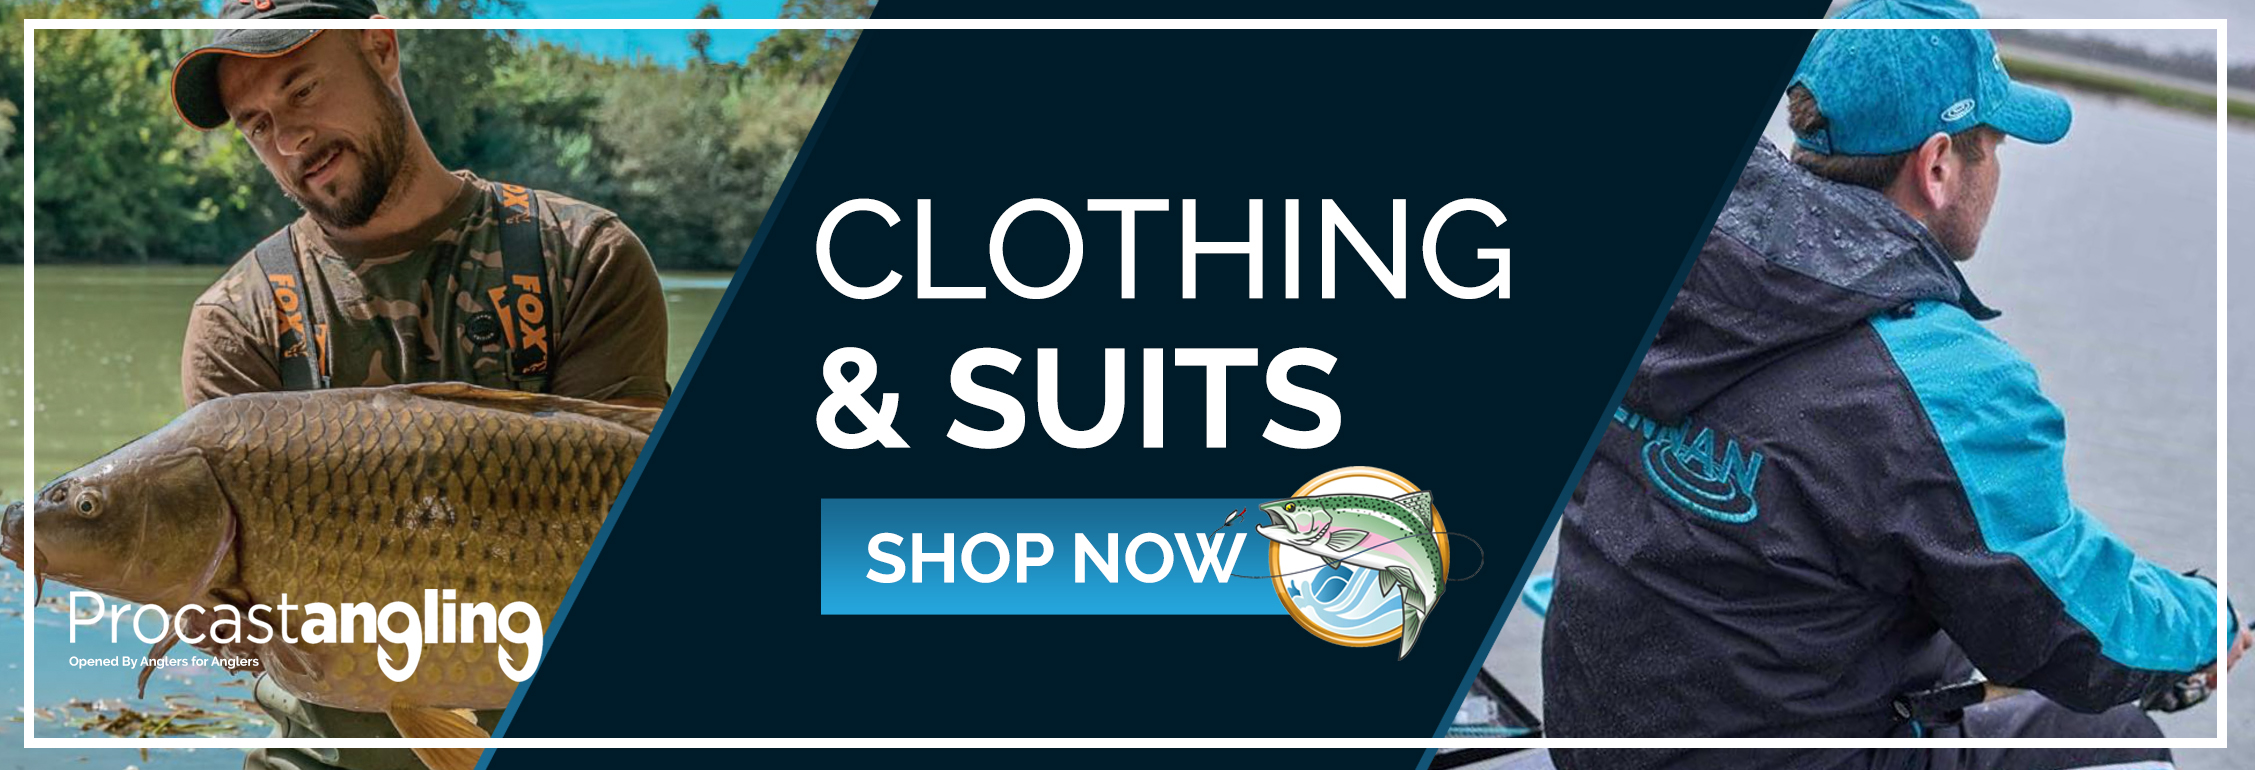 Clothing & Suits